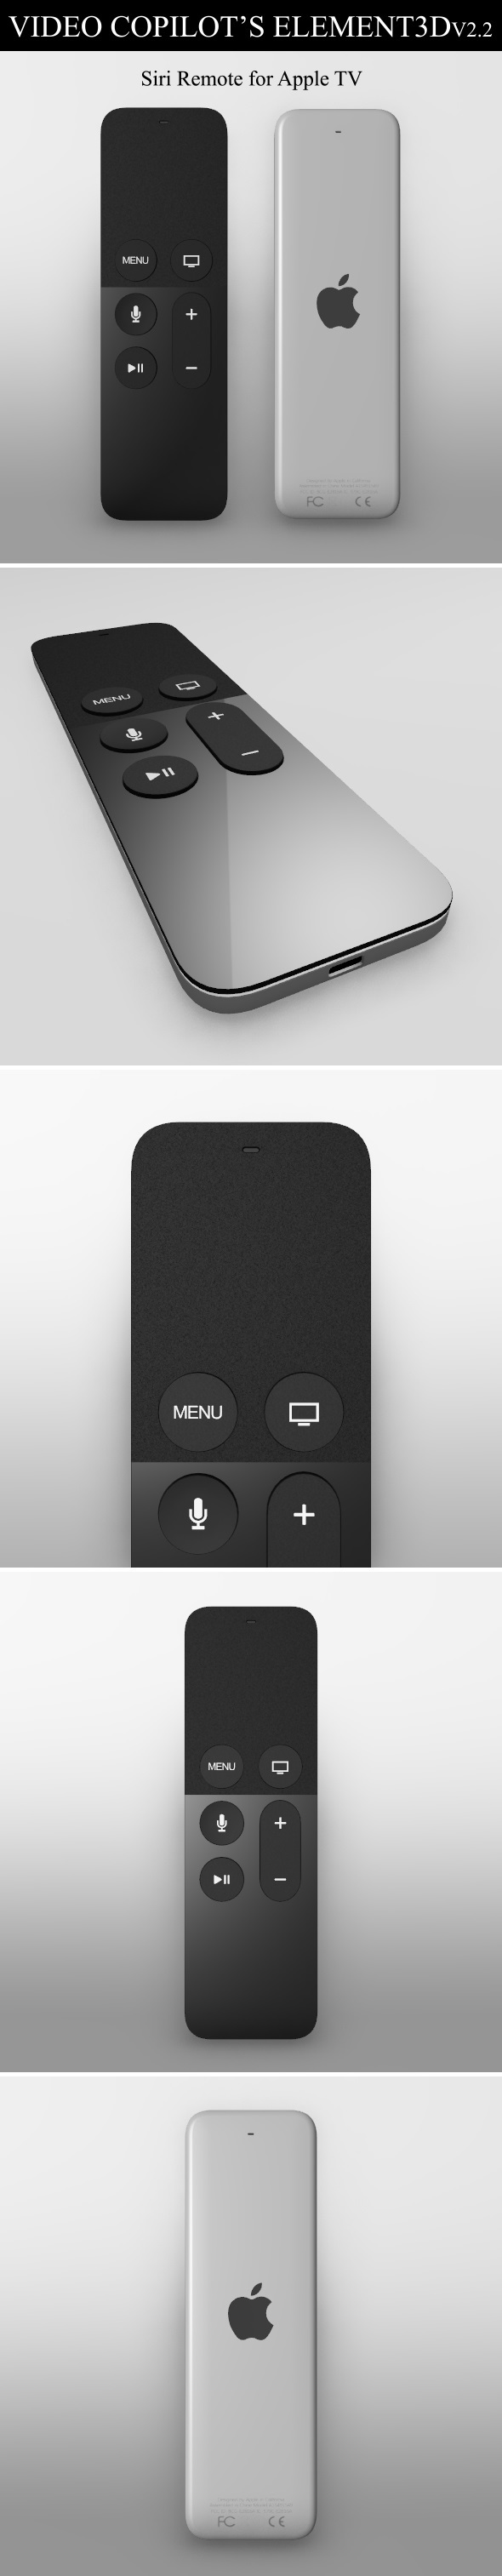 Element3D - Siri Remote for Apple TV - 3DOcean Item for Sale